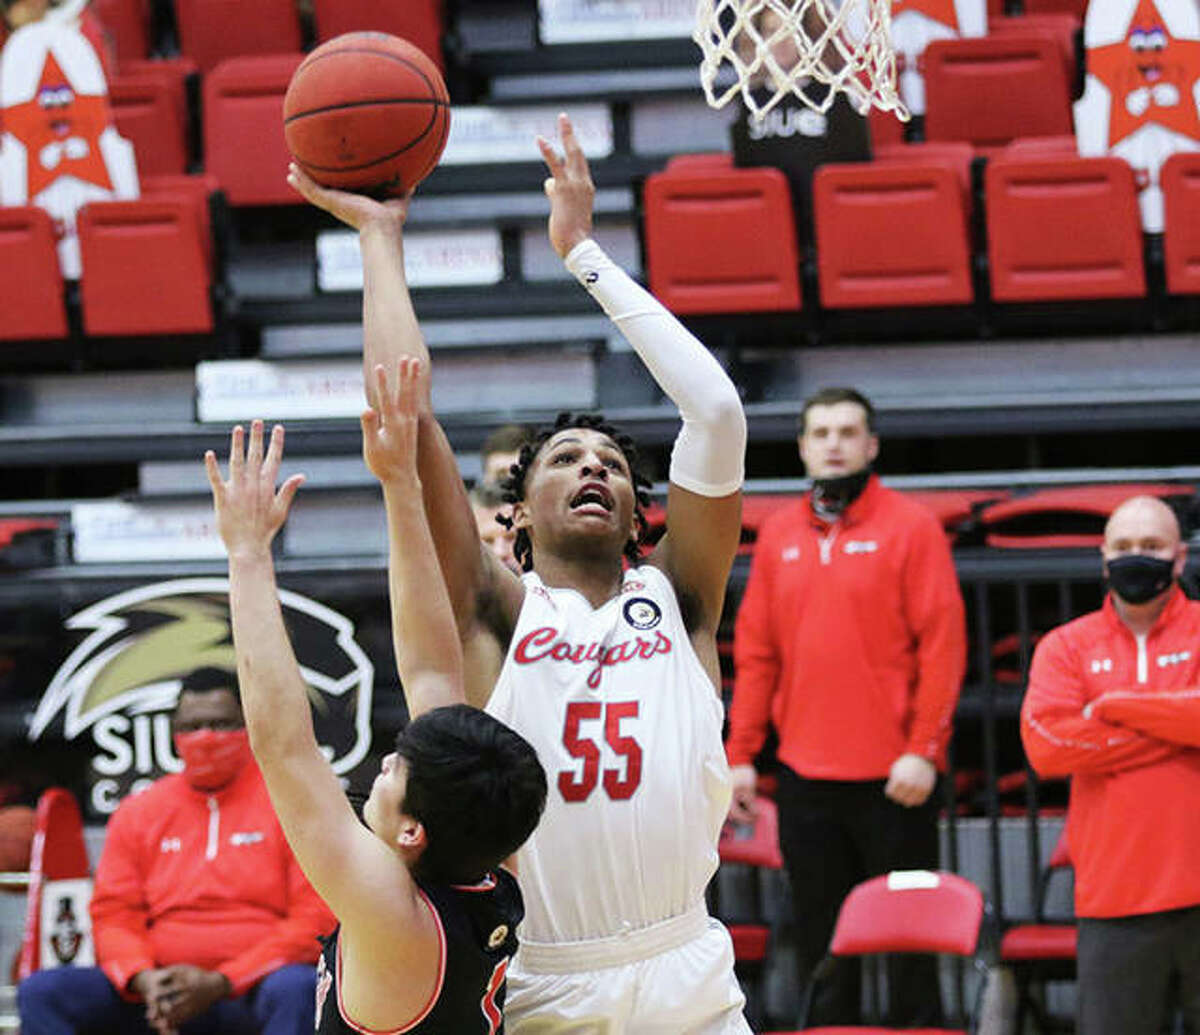 SIUE's Lamar Wright (55) scores over Austin Peay's Carlos Paez during the first half Monday afternoon at First Community Arena in Edwardsville.